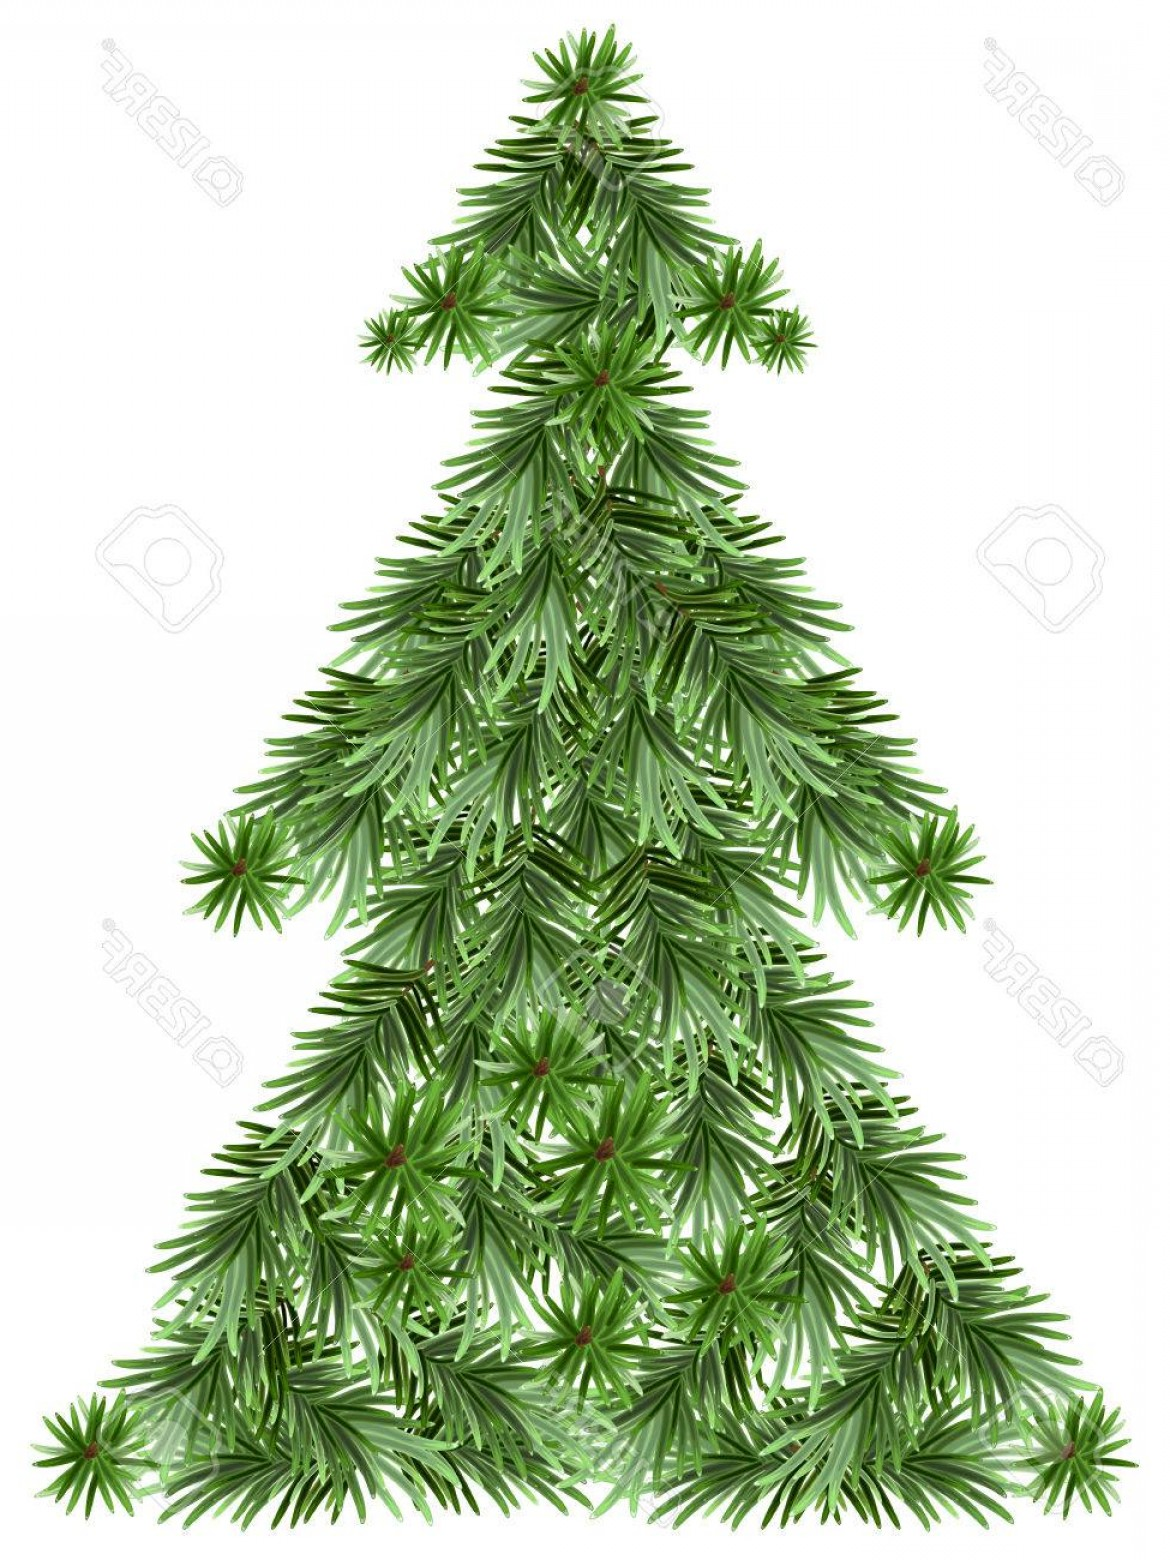 Pine Tree Vector Format: Photostock Vector Christmas Pine Tree Isolated Illustration In Vector Format